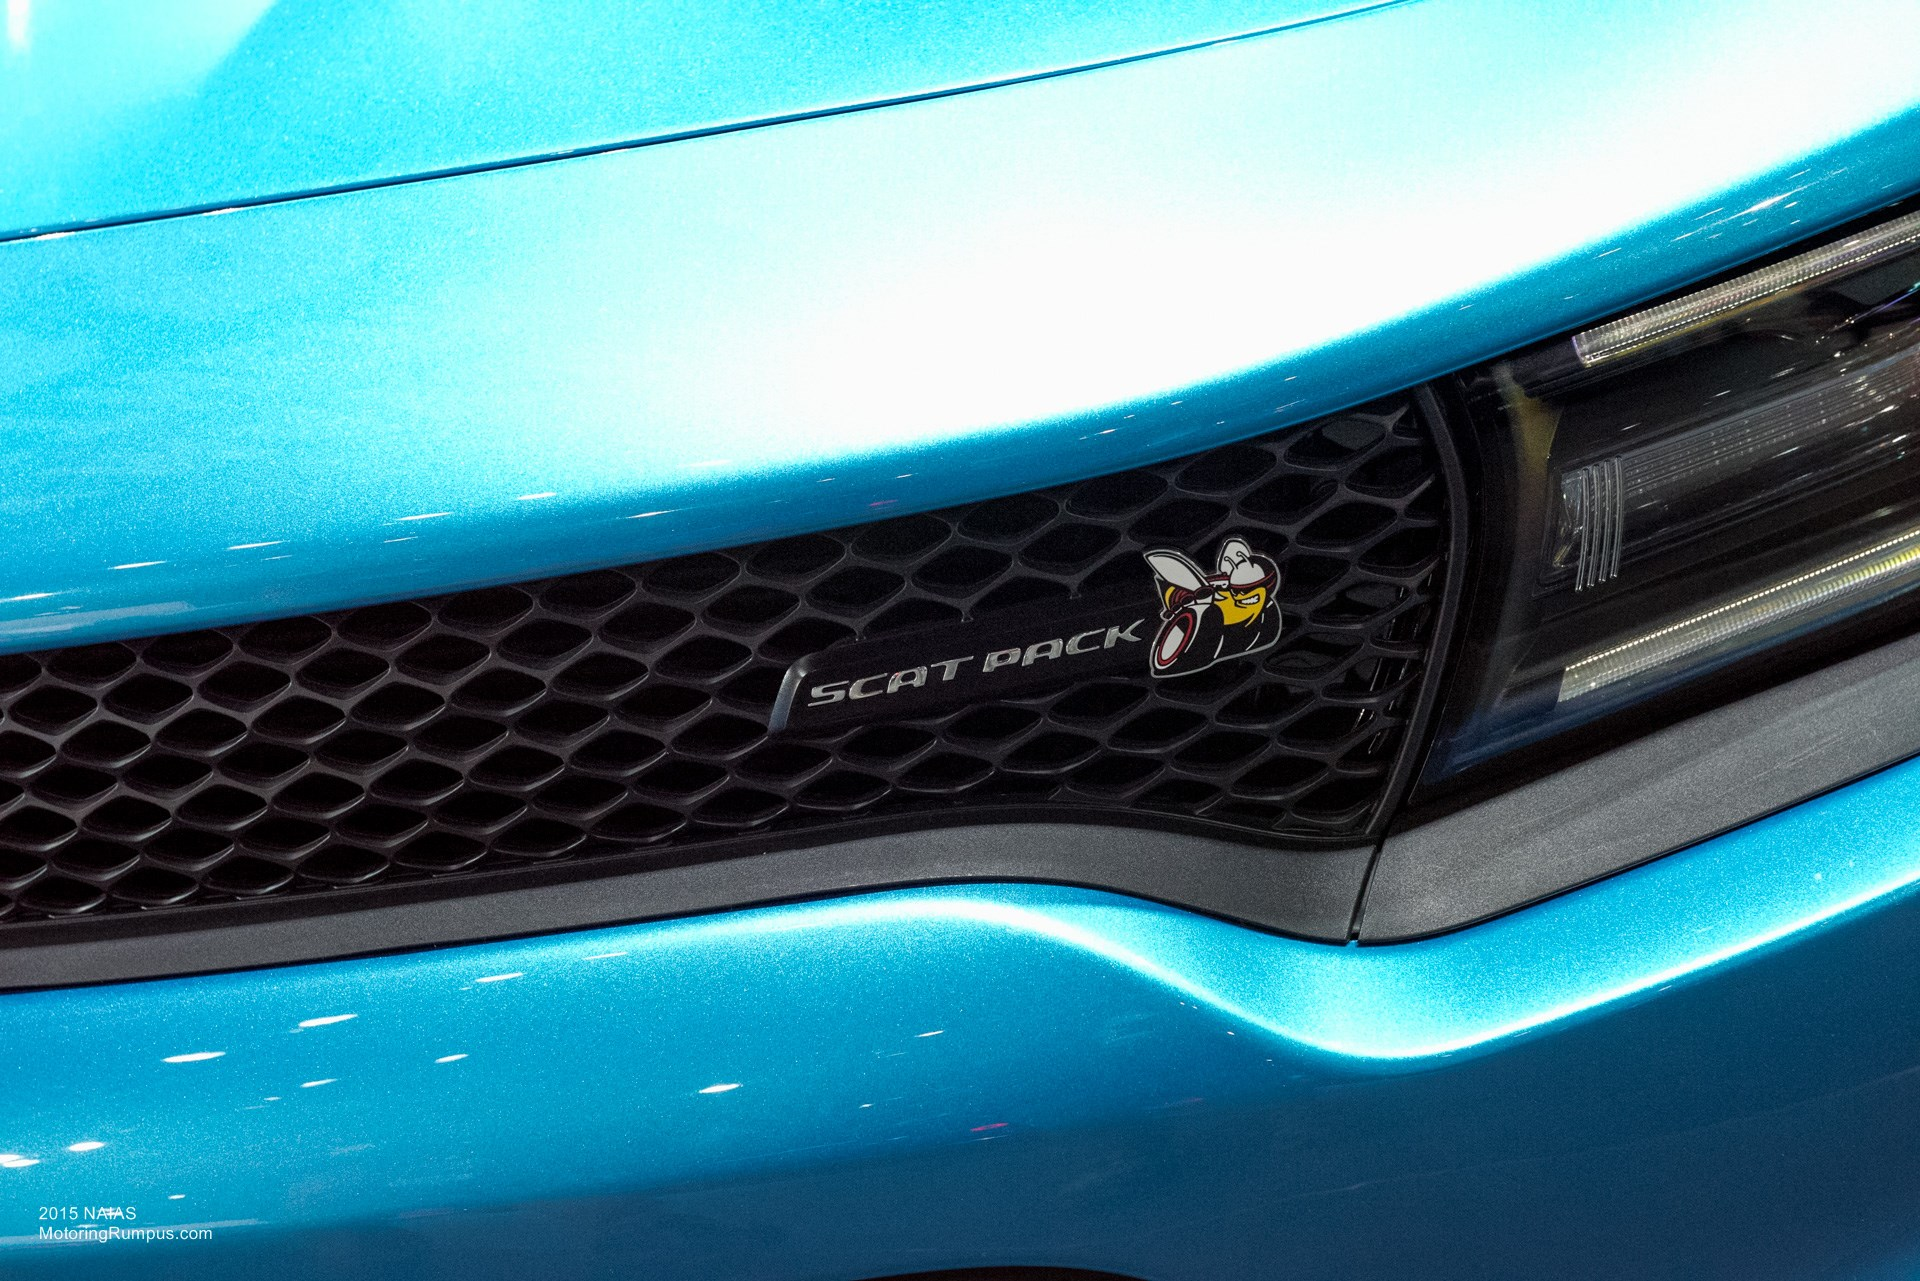 2015 NAIAS Dodge Charger Scat Pack Grille Badge